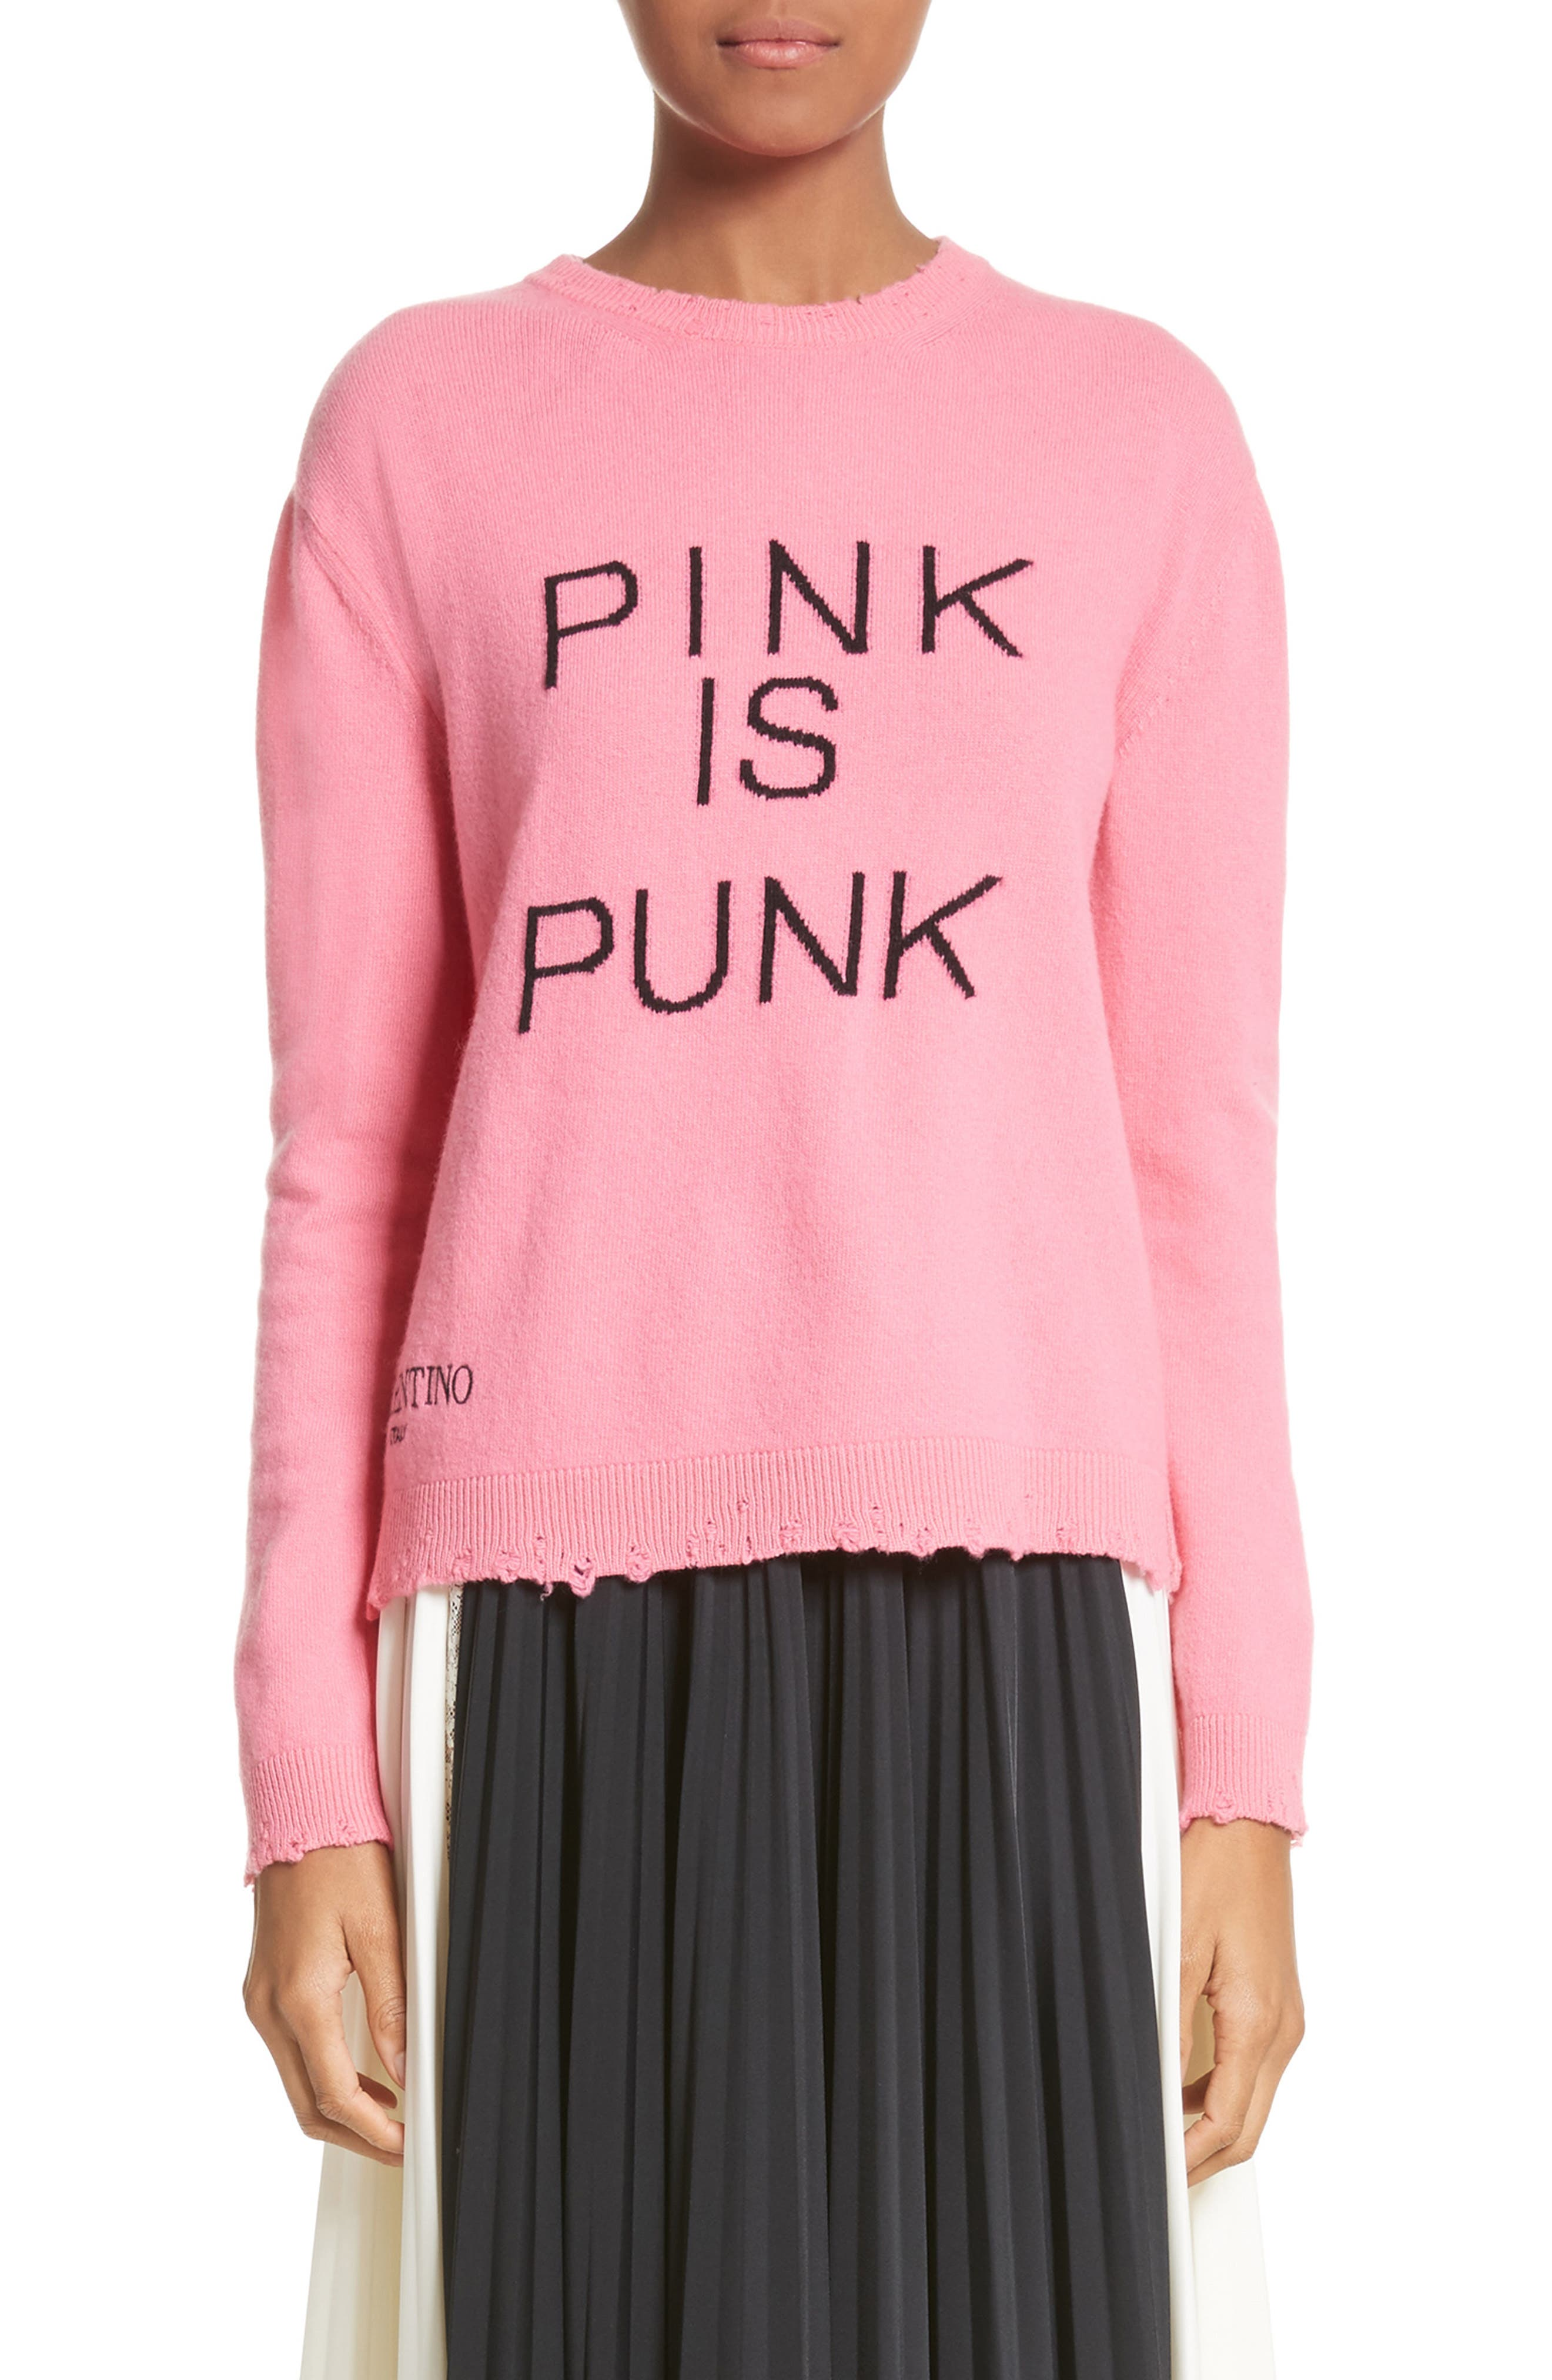 Main Image - Valentino Pink Is Punk Wool & Cashmere Sweater